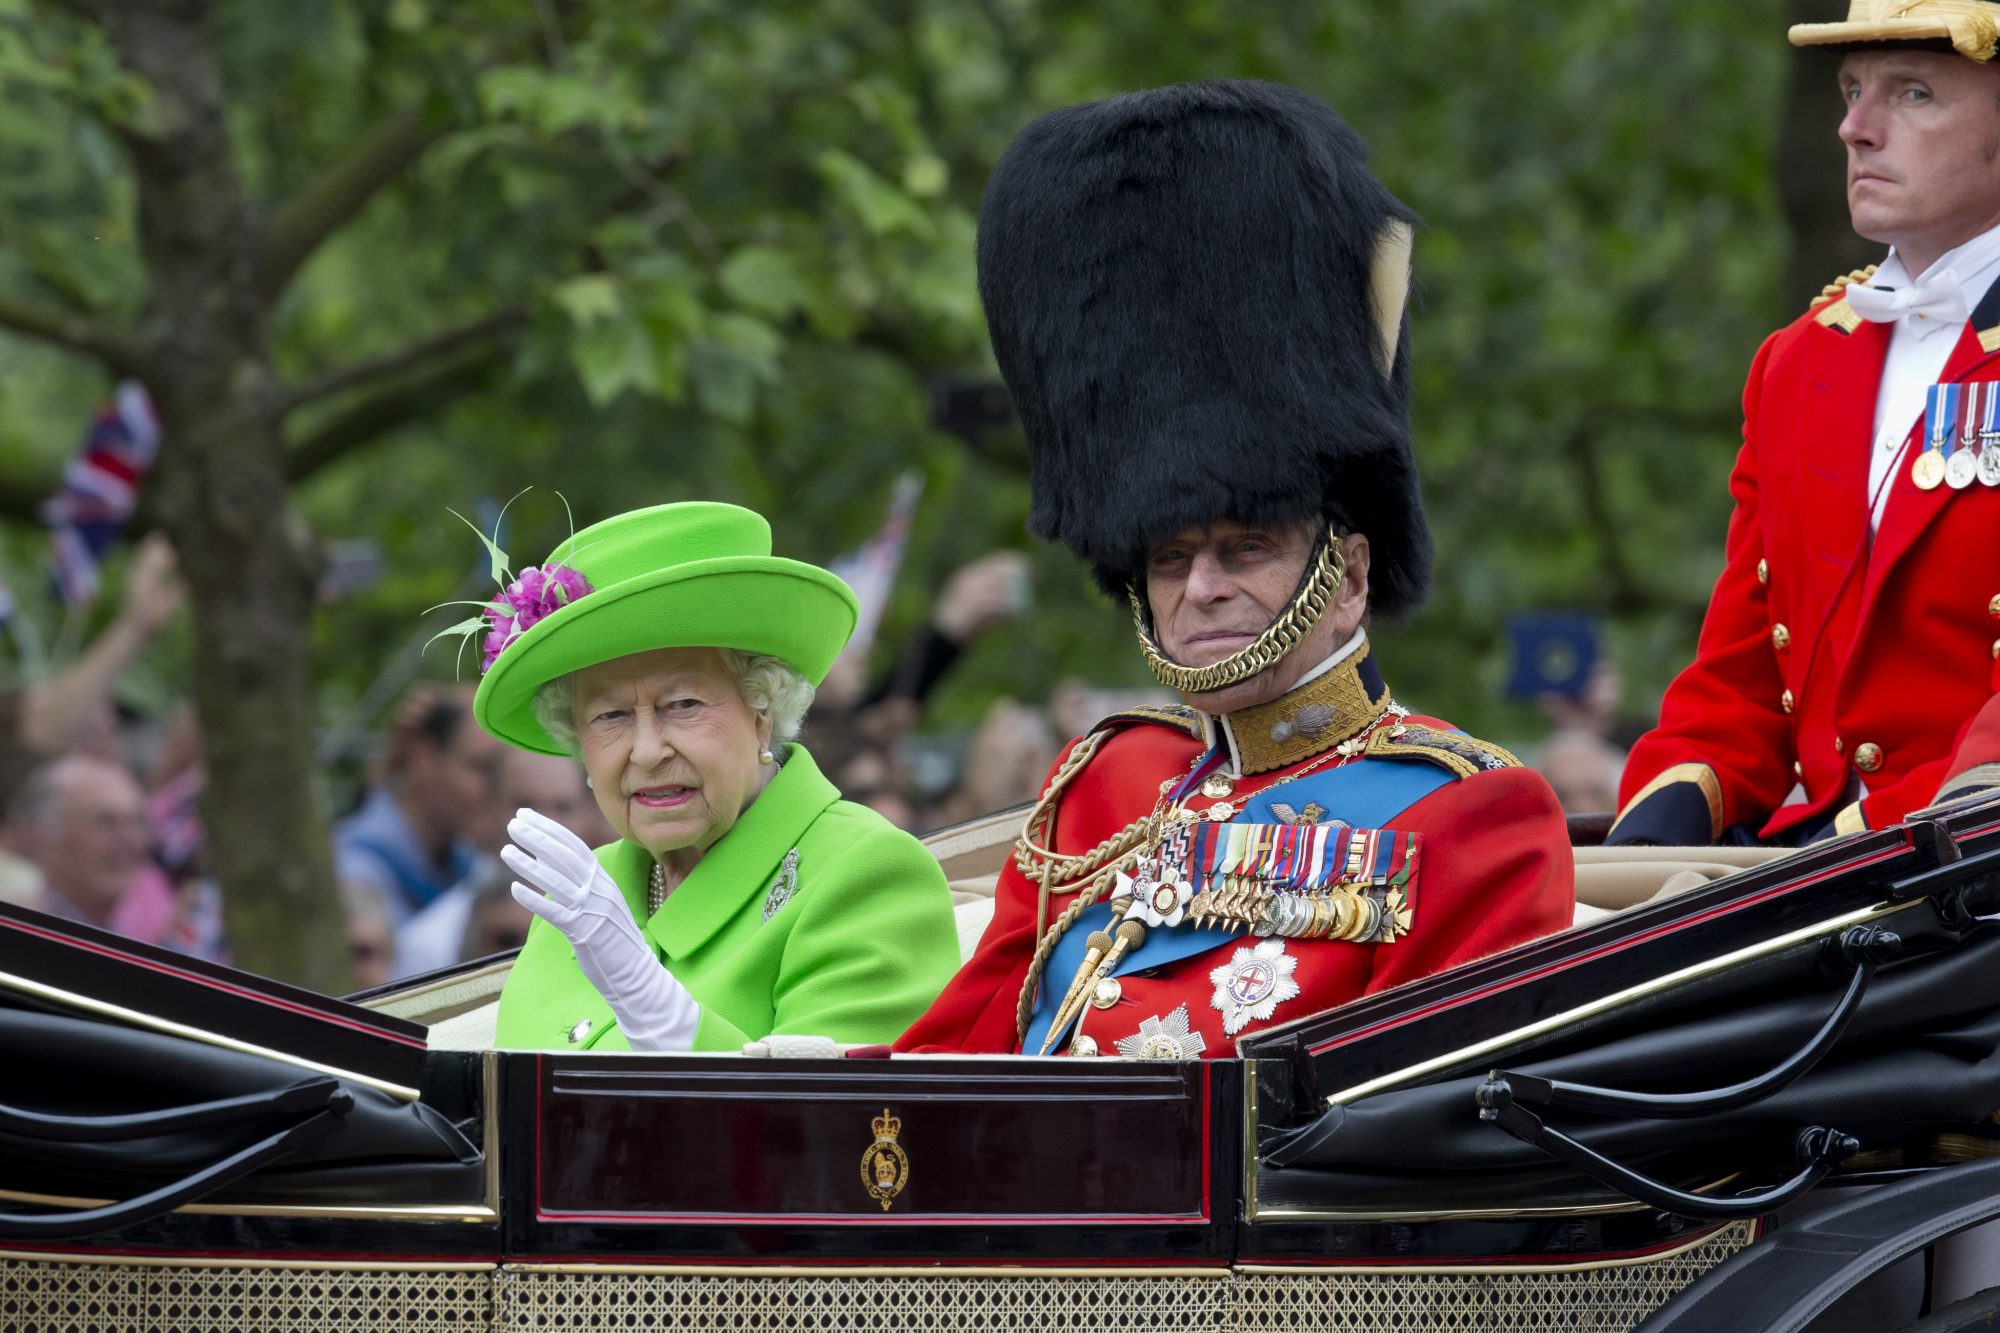 LONDON, ENGLAND - JUNE 11: Queen Elizabeth II and Prince Philip, Duke of Edinburgh, travel by carriage along The Mall to the annual Trooping The Colour ceremony at Horse Guards Parade on June 11, 2016 in London, England. (Photo by Julian Parker/UK Press via Getty Images)